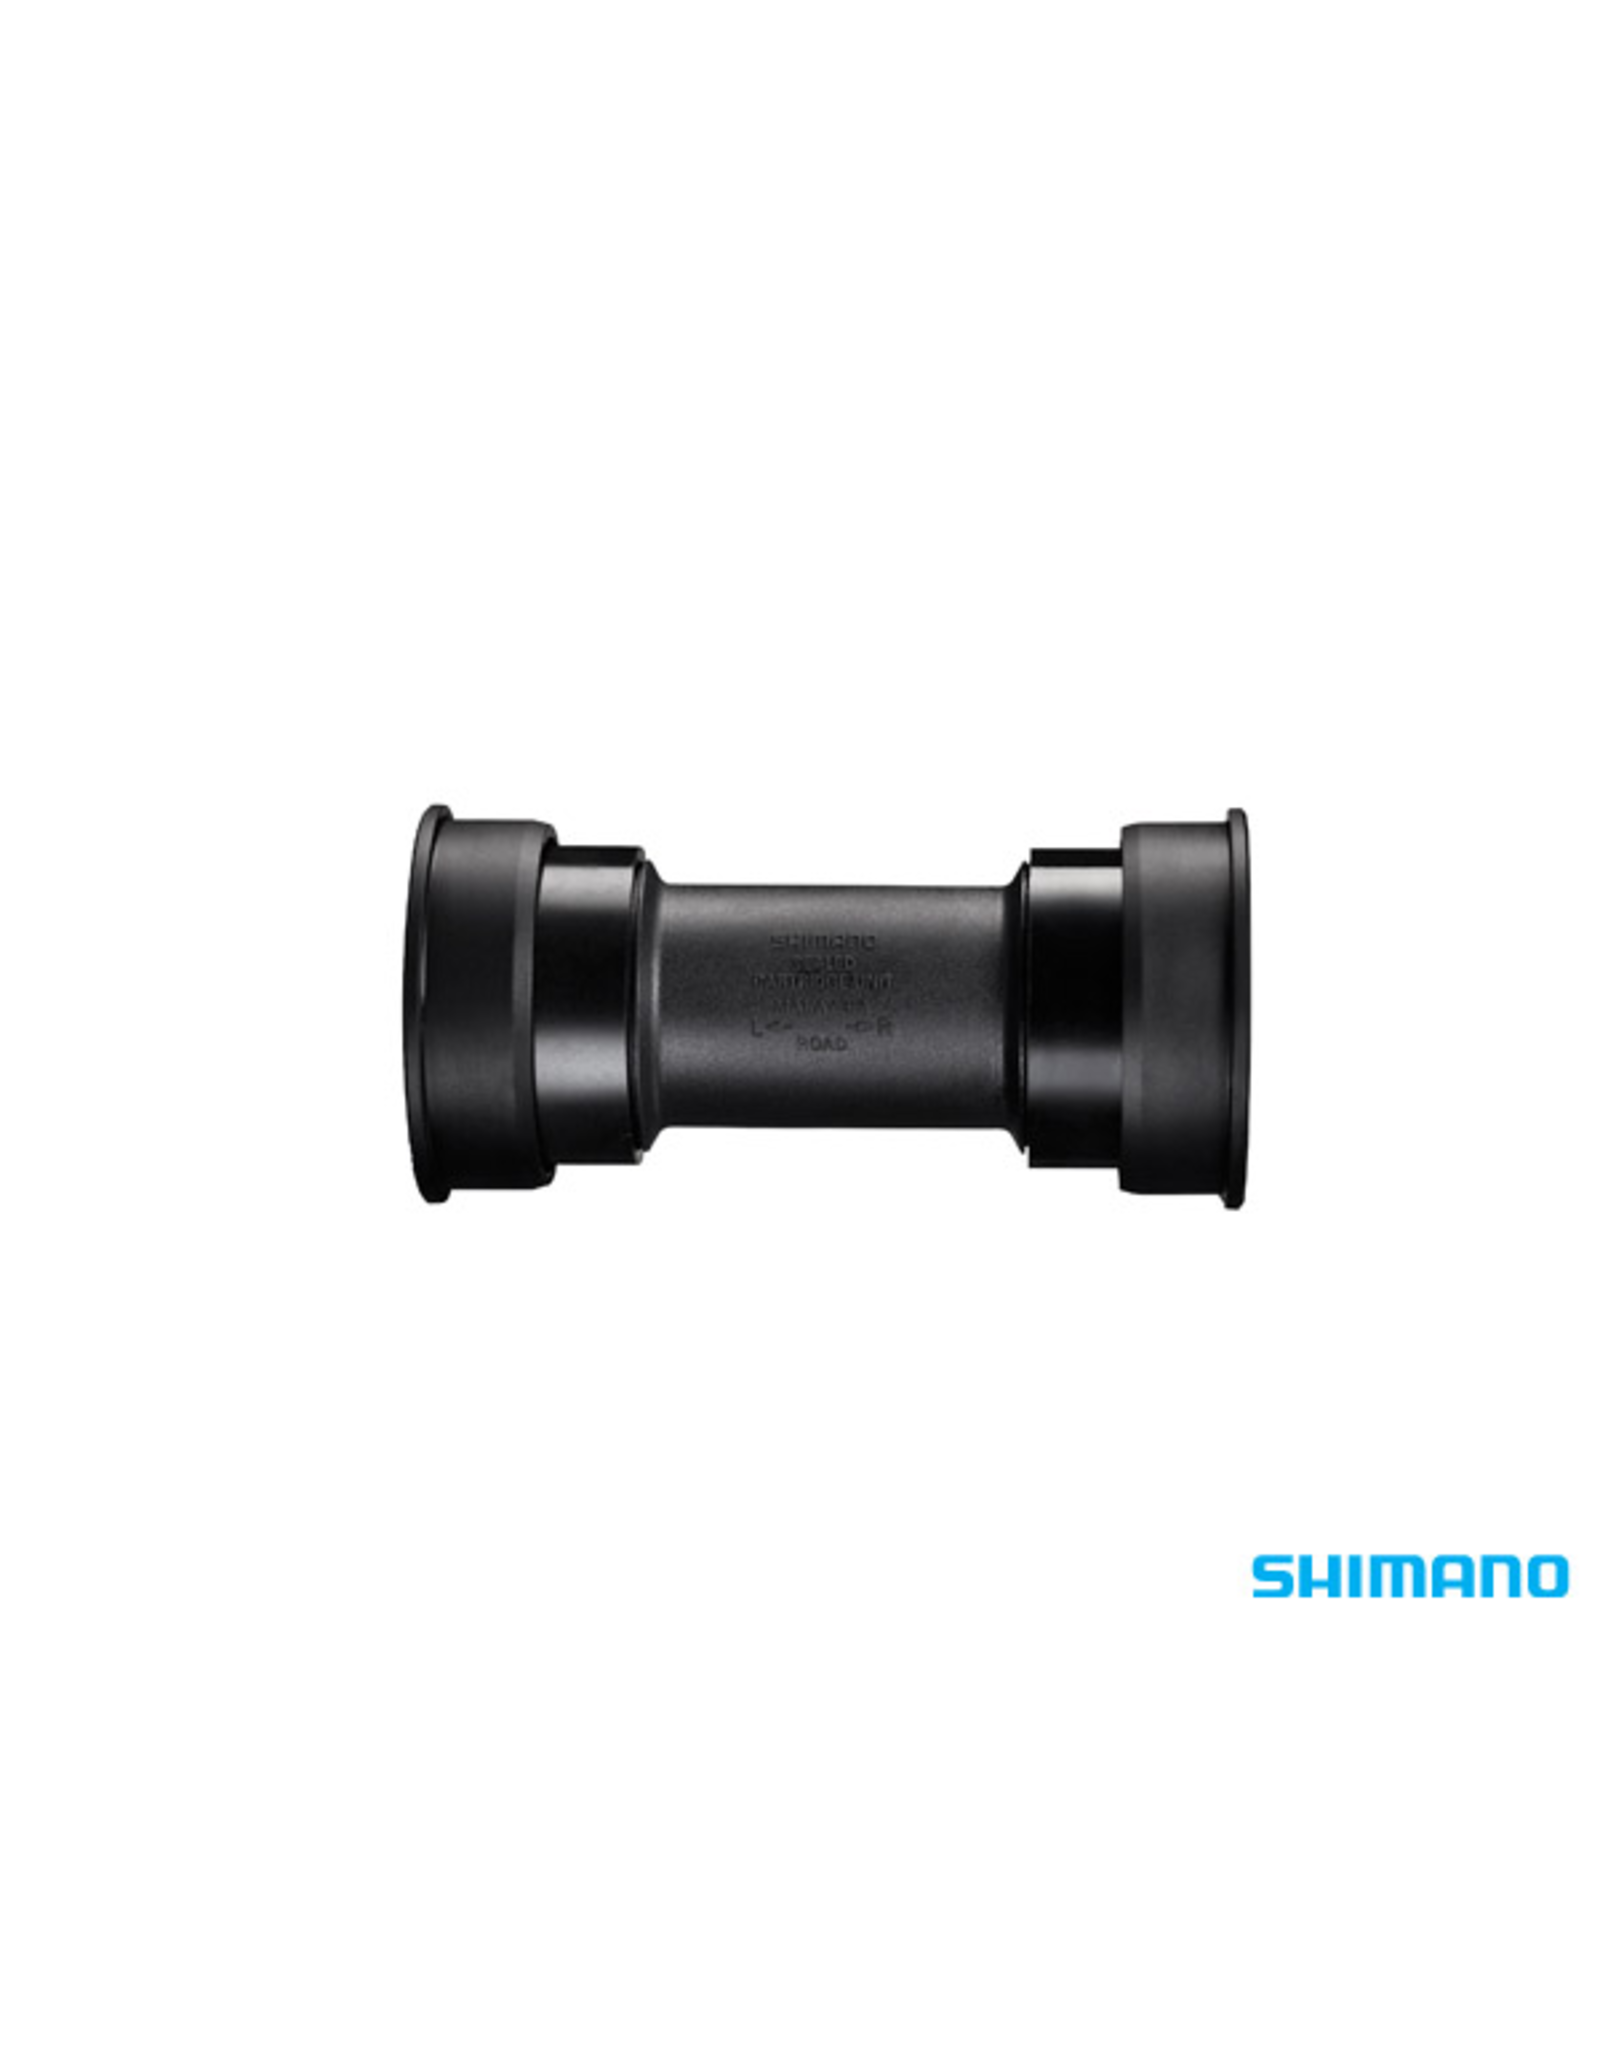 Shimano BOTTOM BRACKET SHIMANO TIAGRA BB-RS500 PRESS-FIT